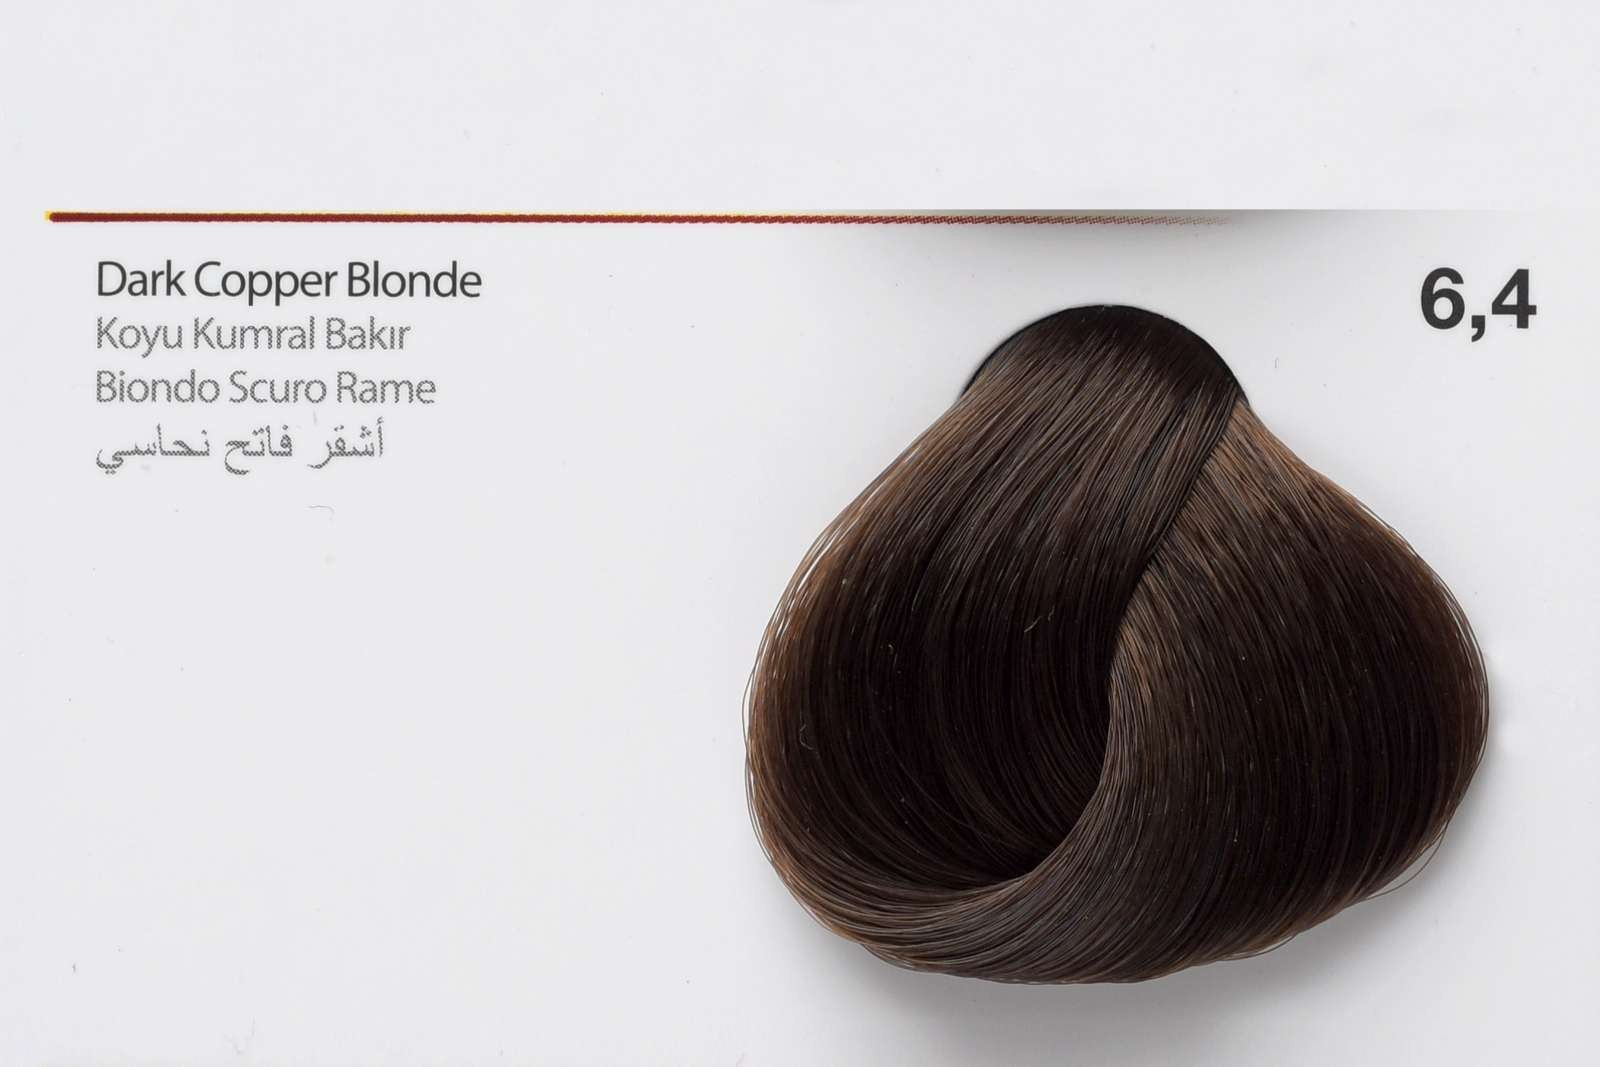 6,4 - Dark Copper Blonde-swatch